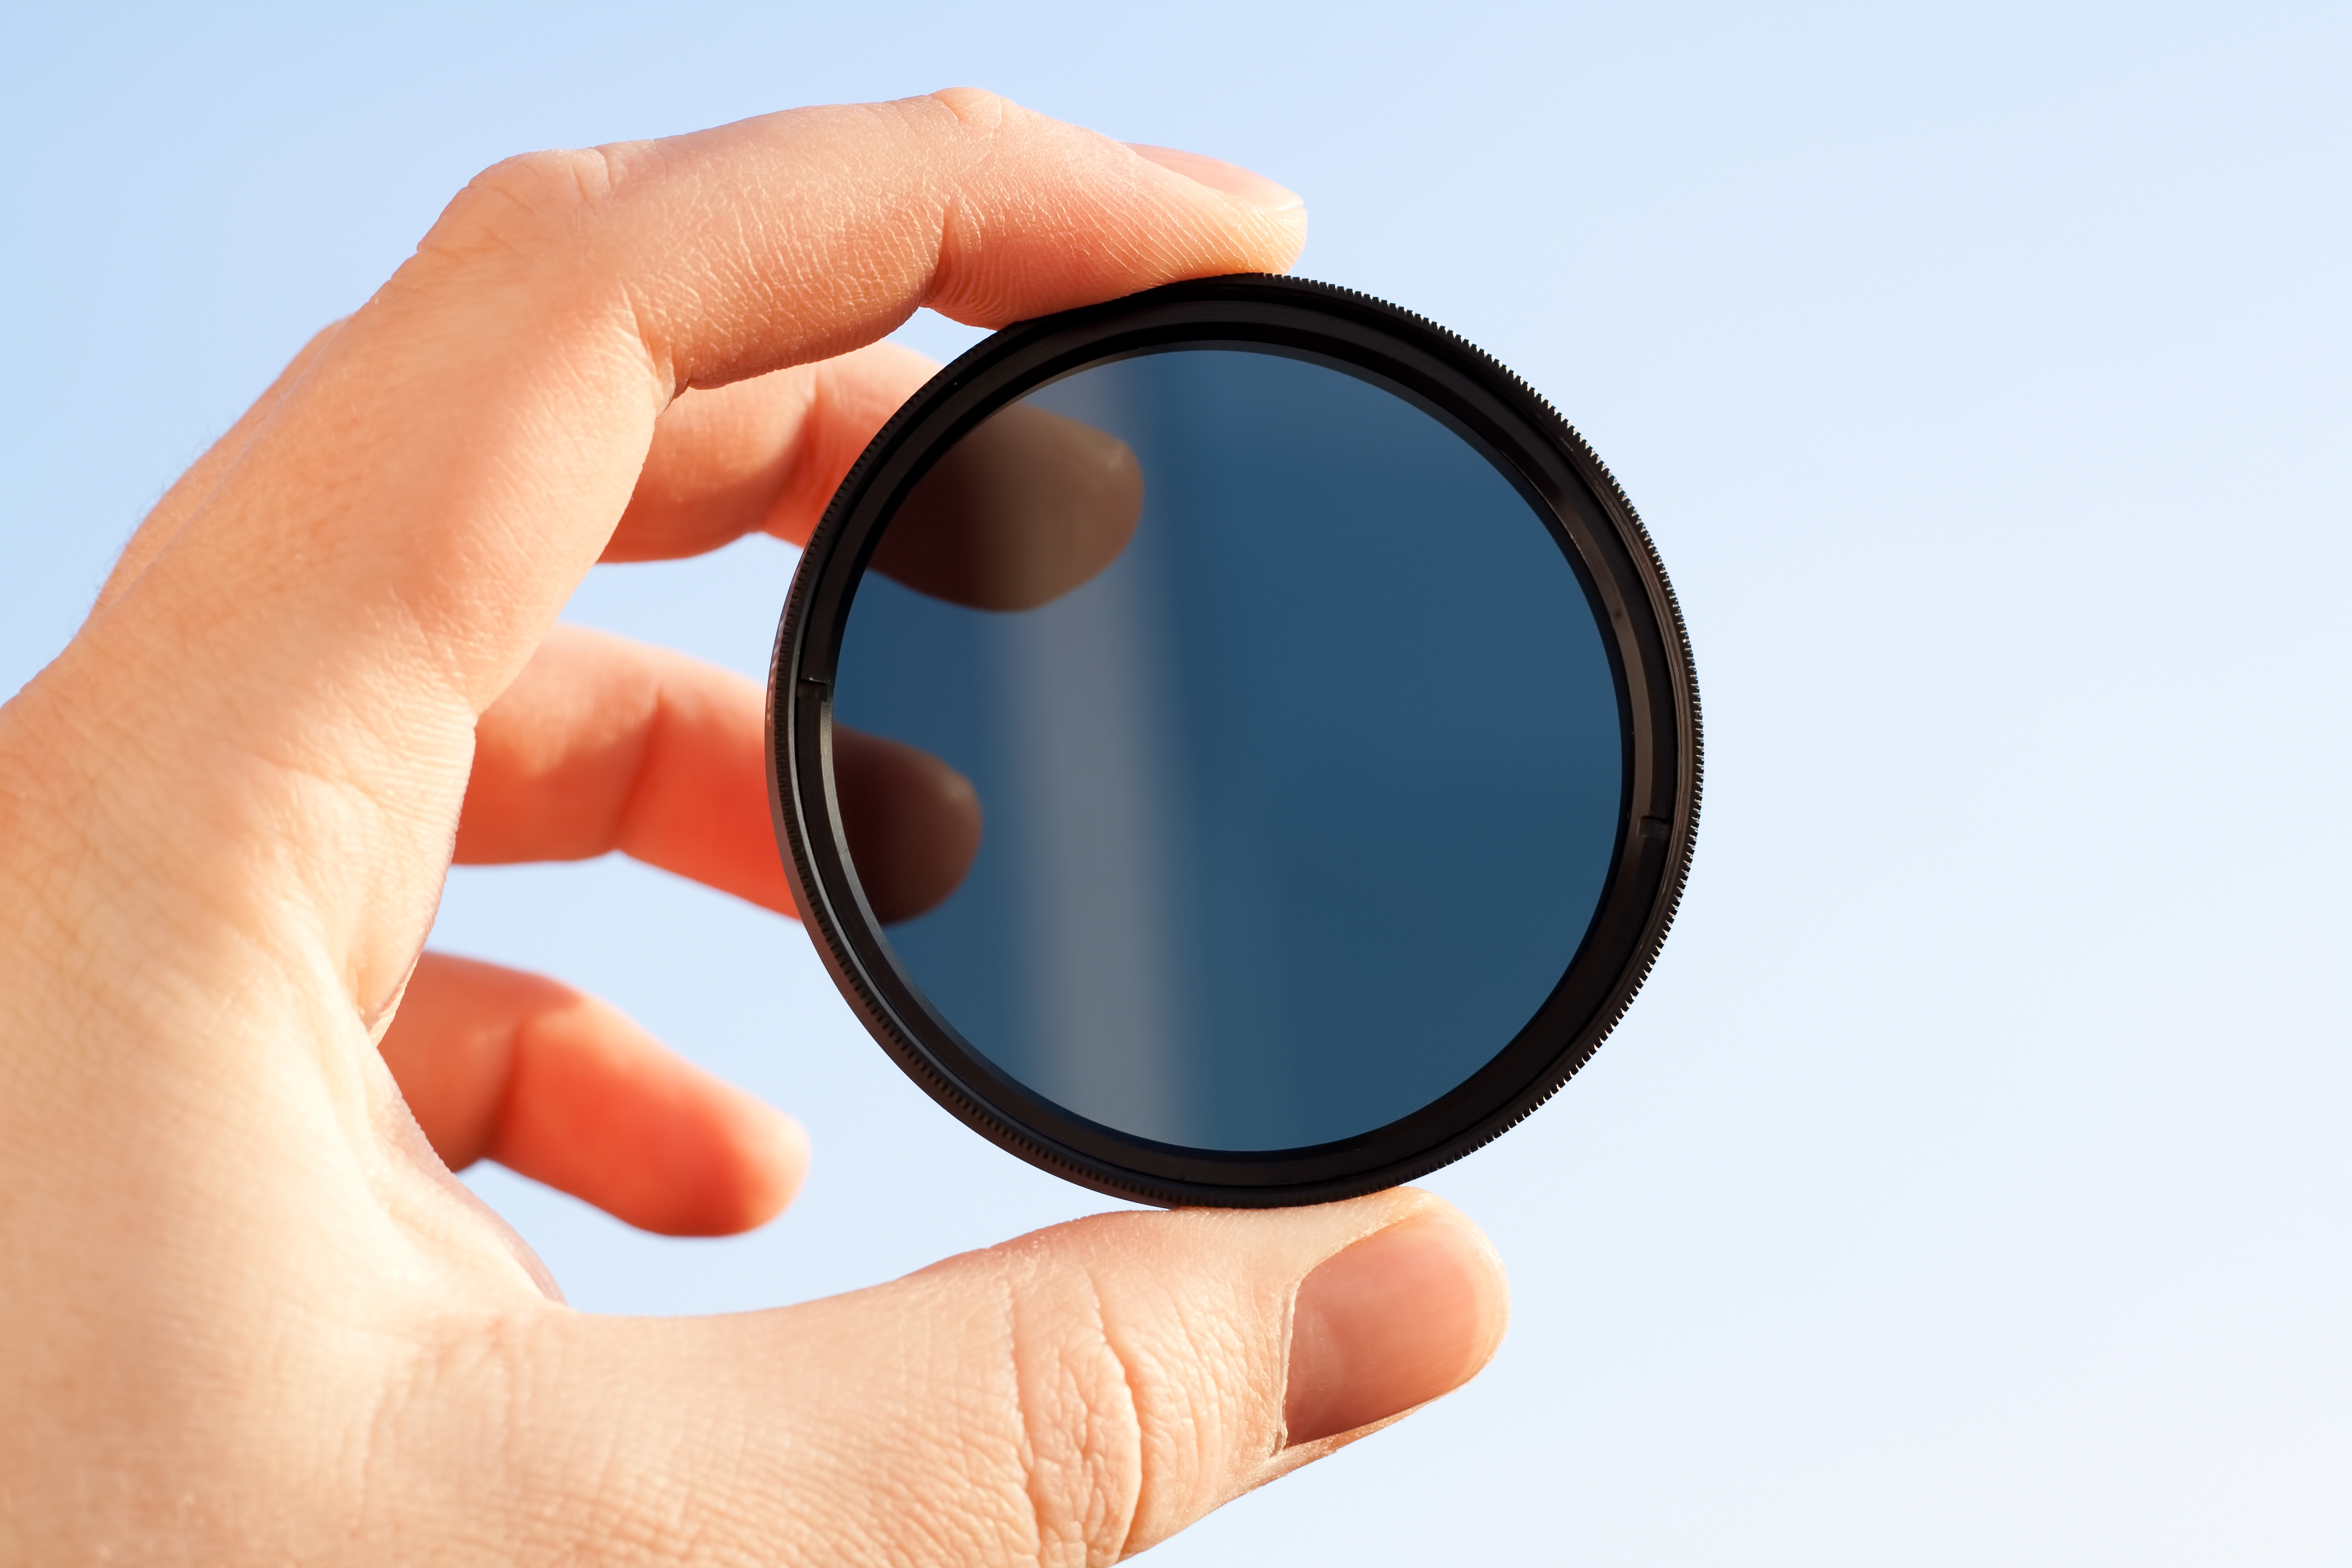 Example of a screw-onND filter that is placed directly on the lens